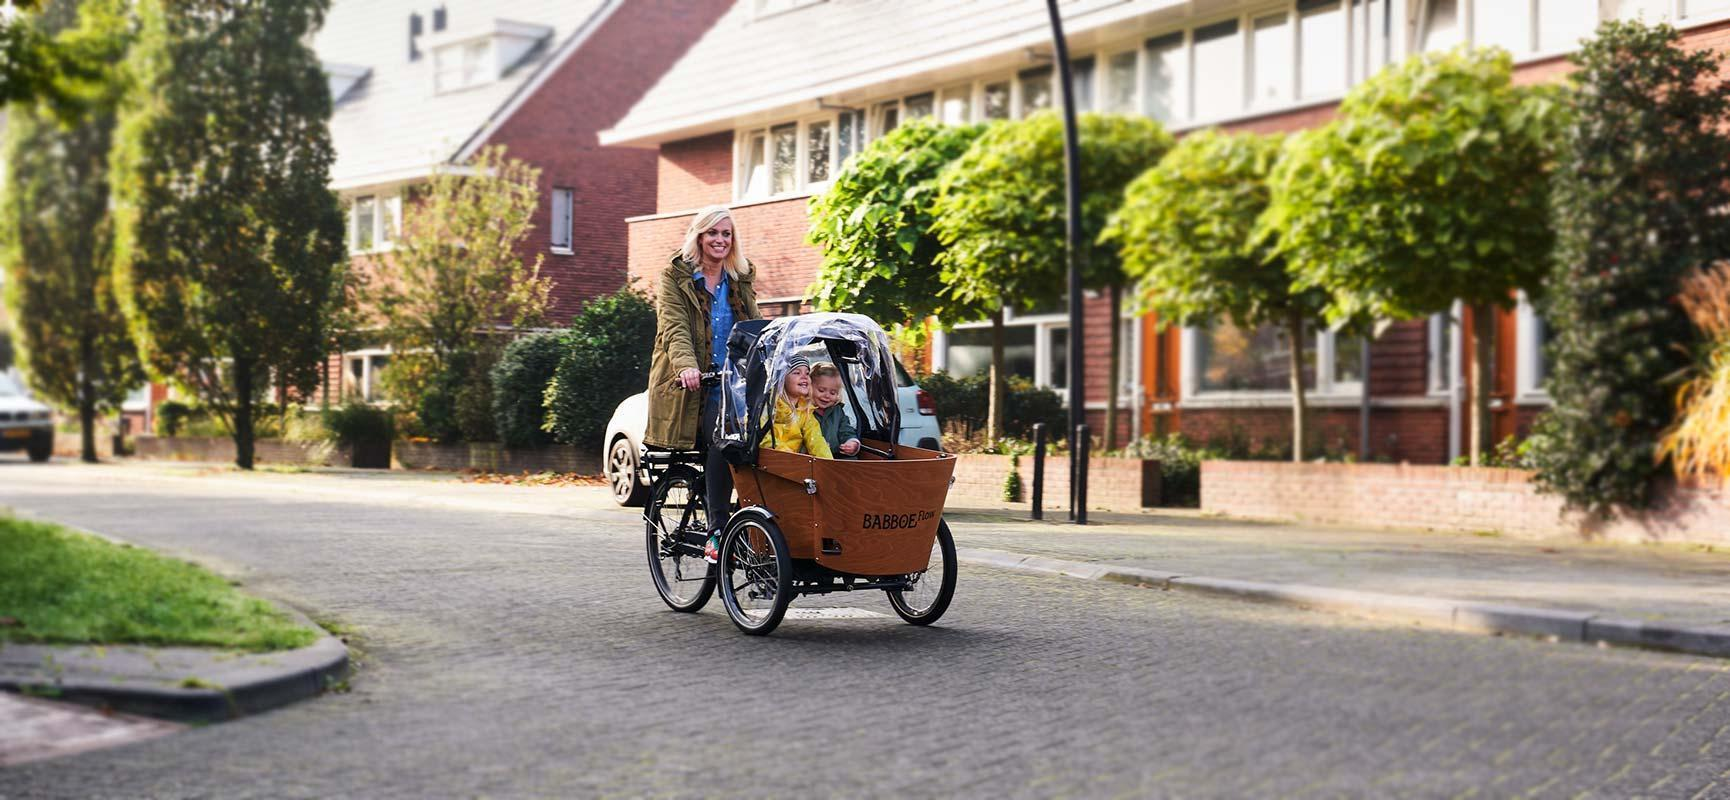 What can your cargo bike do?